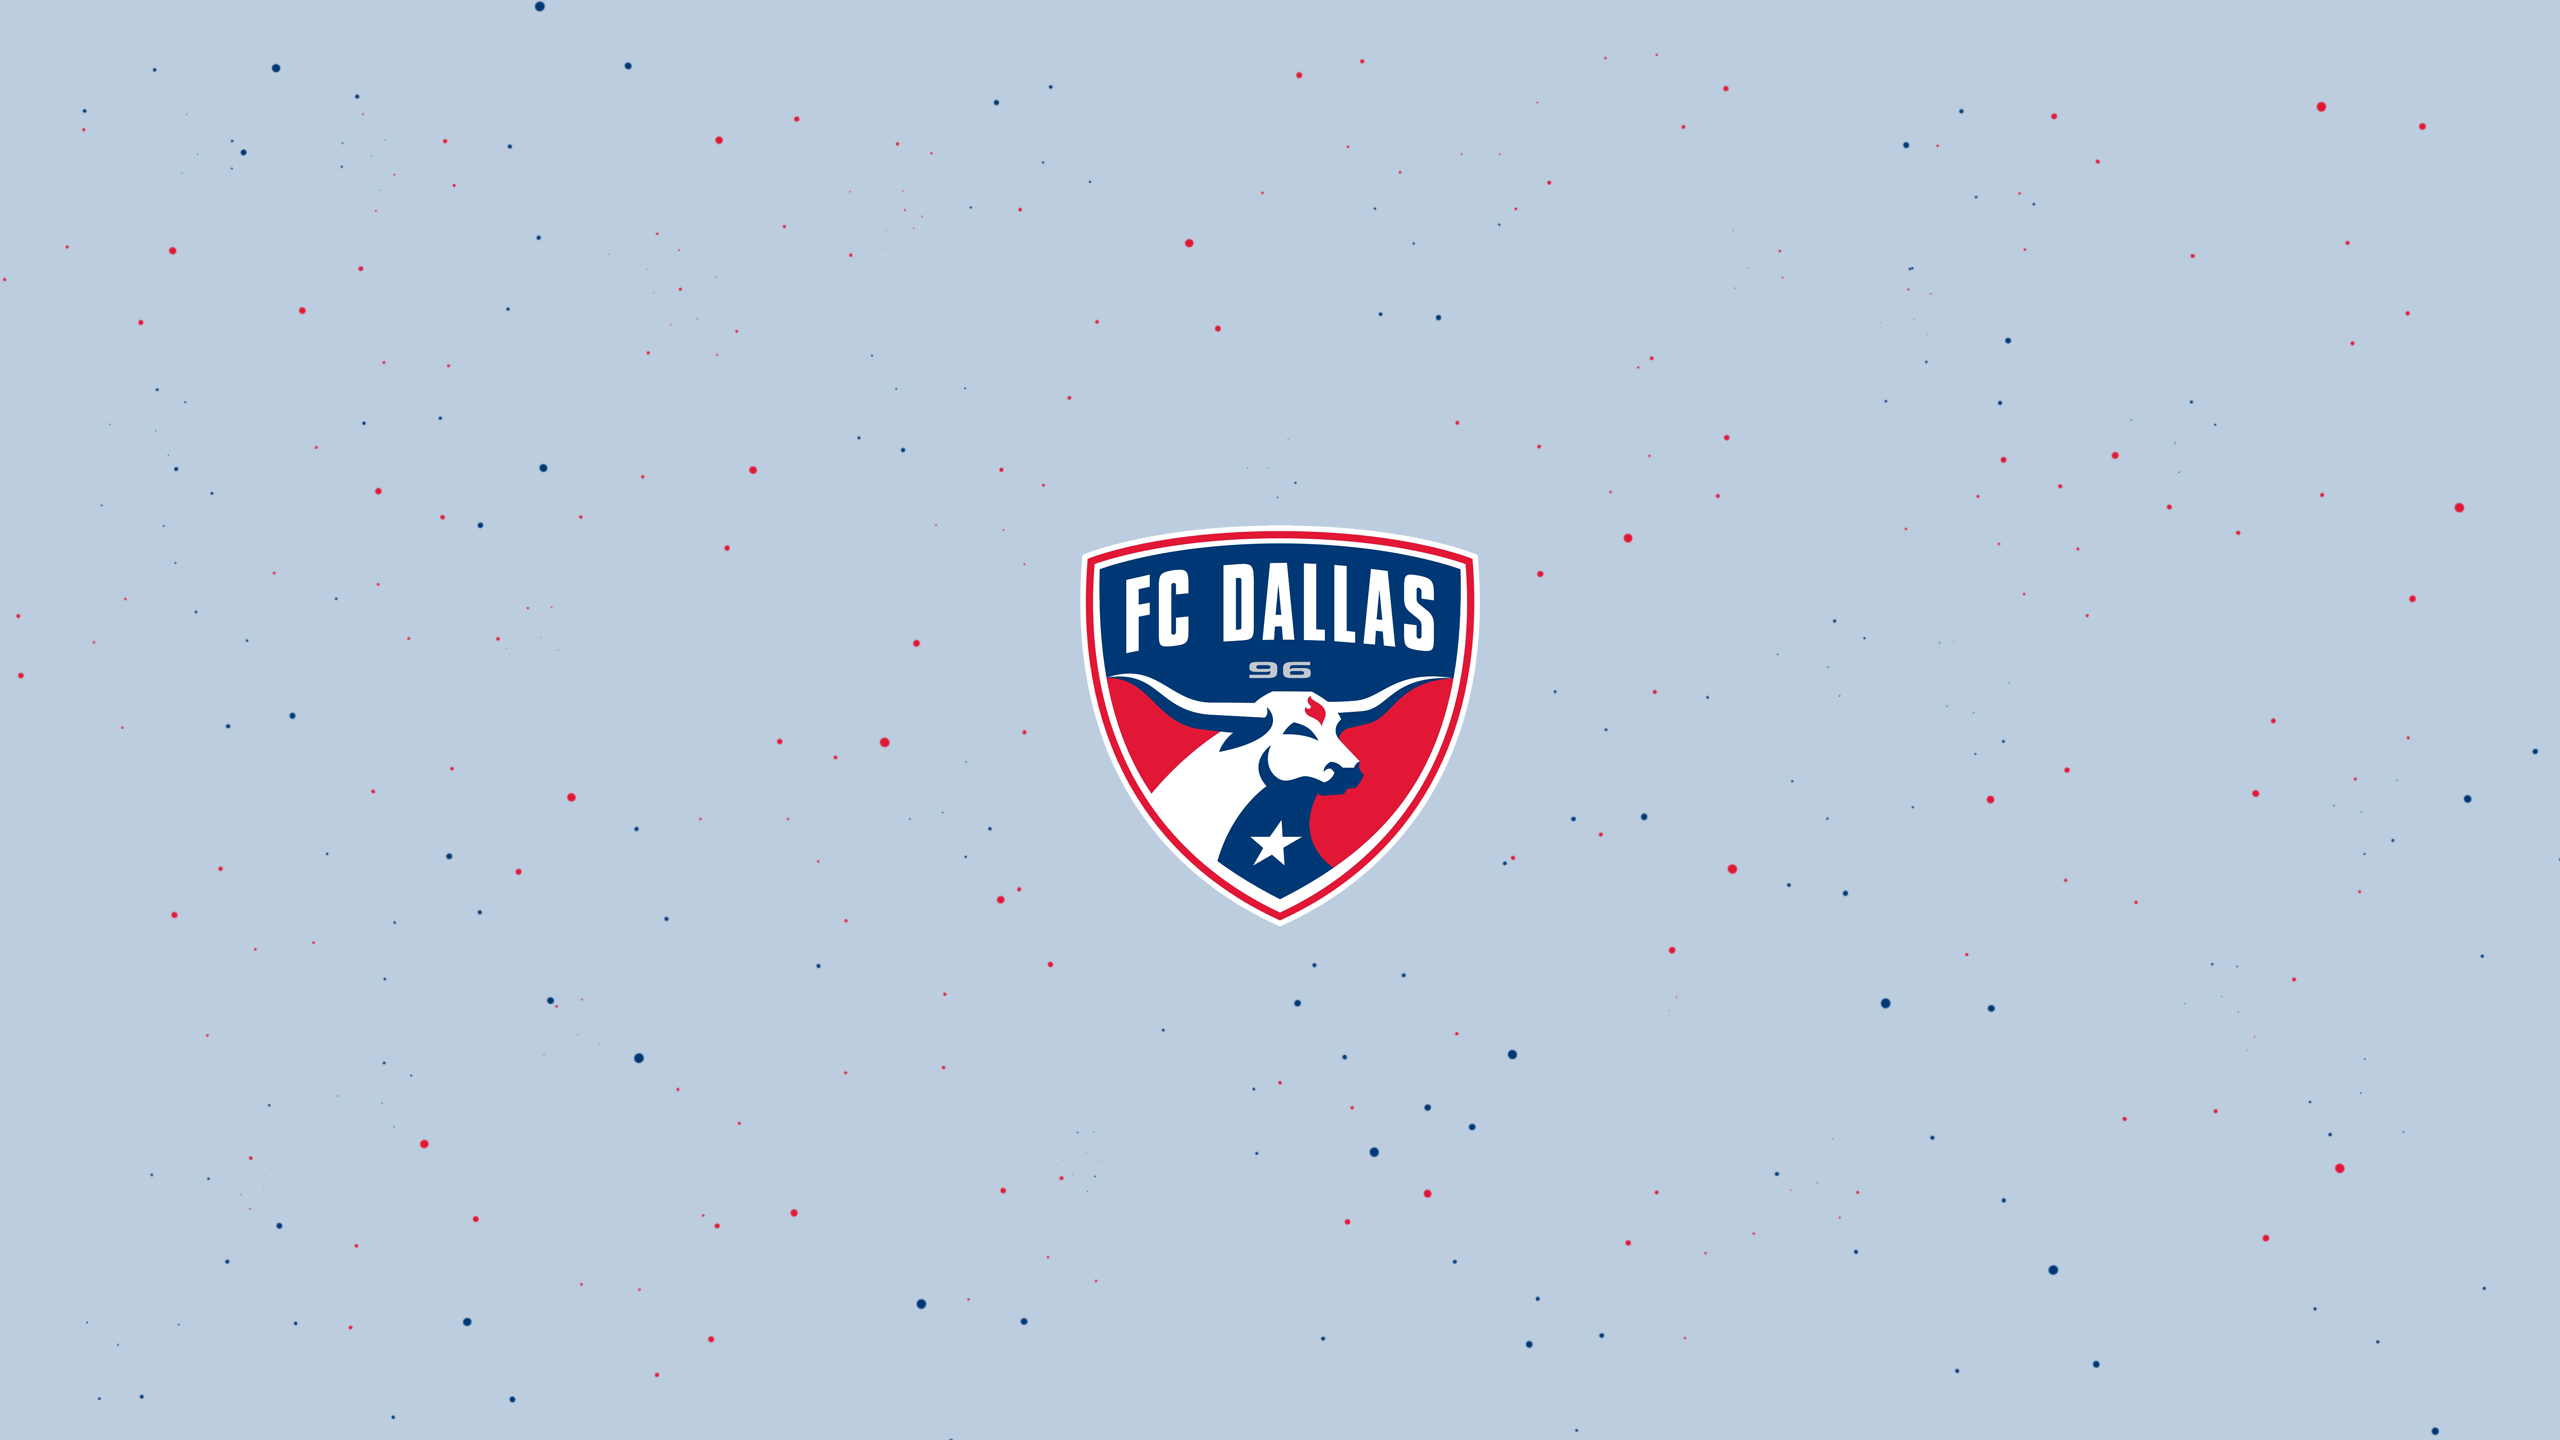 FC Dallas (Away)